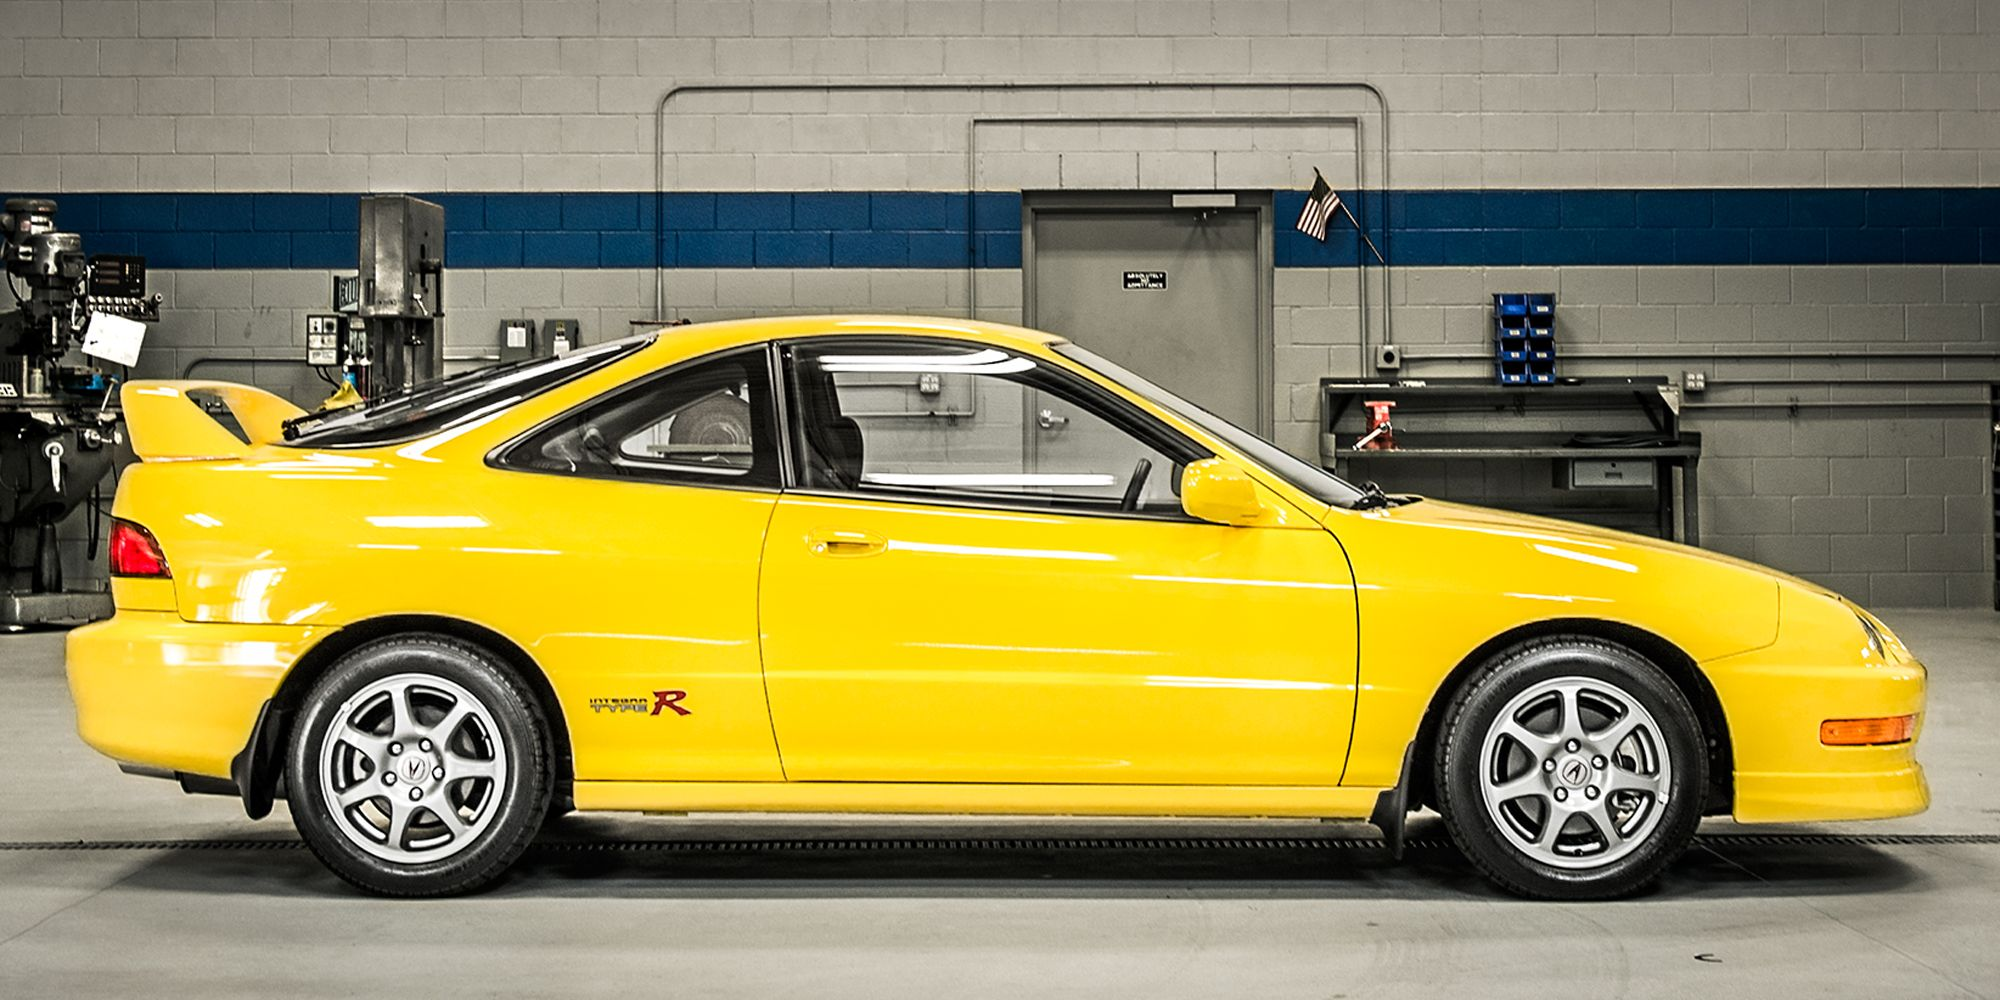 please listen to the glory of the integra type r Yellow Integra Type R